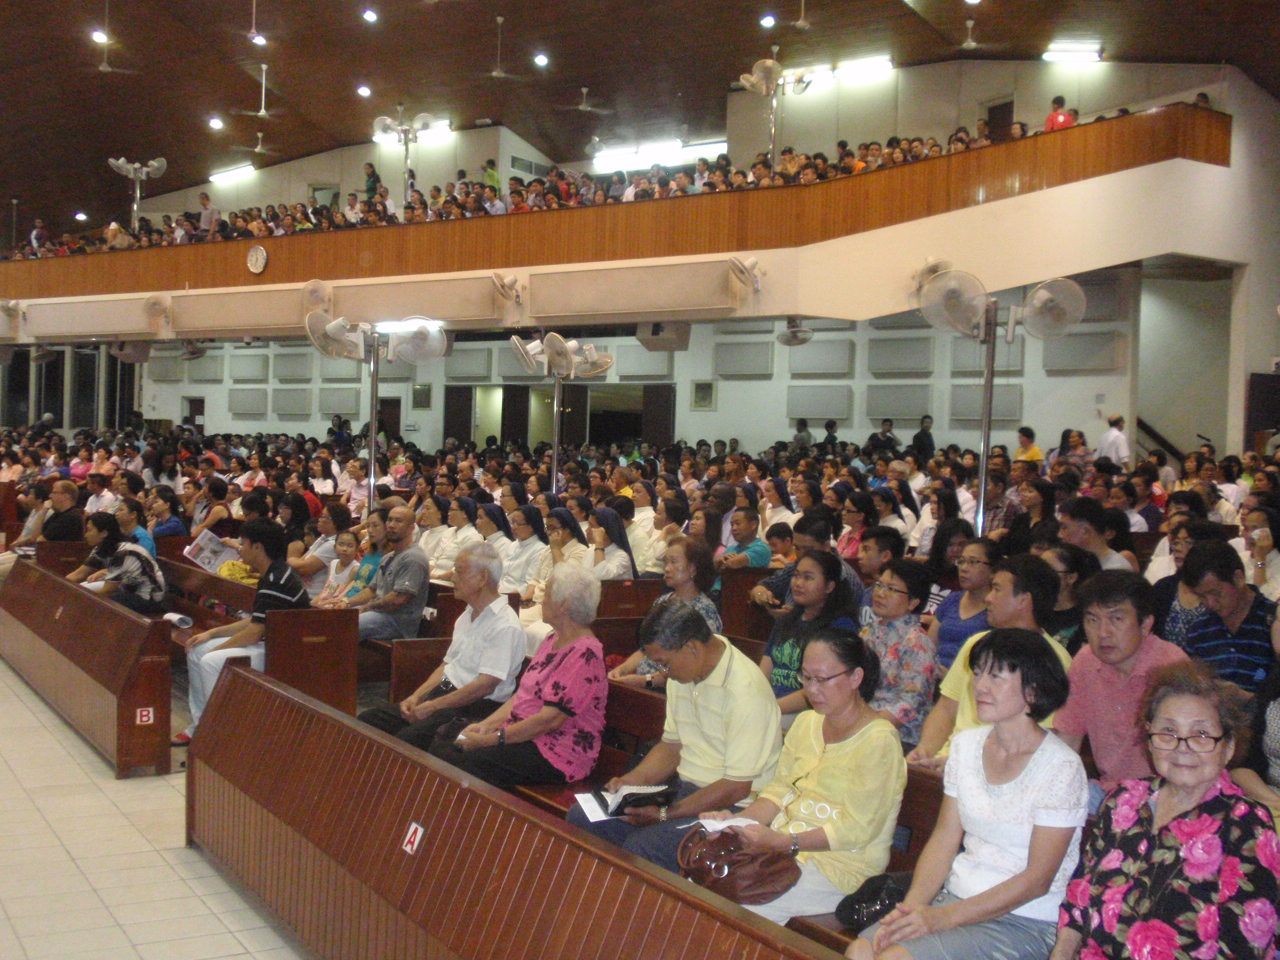 A section of the congregation waiting for Mass to begin.